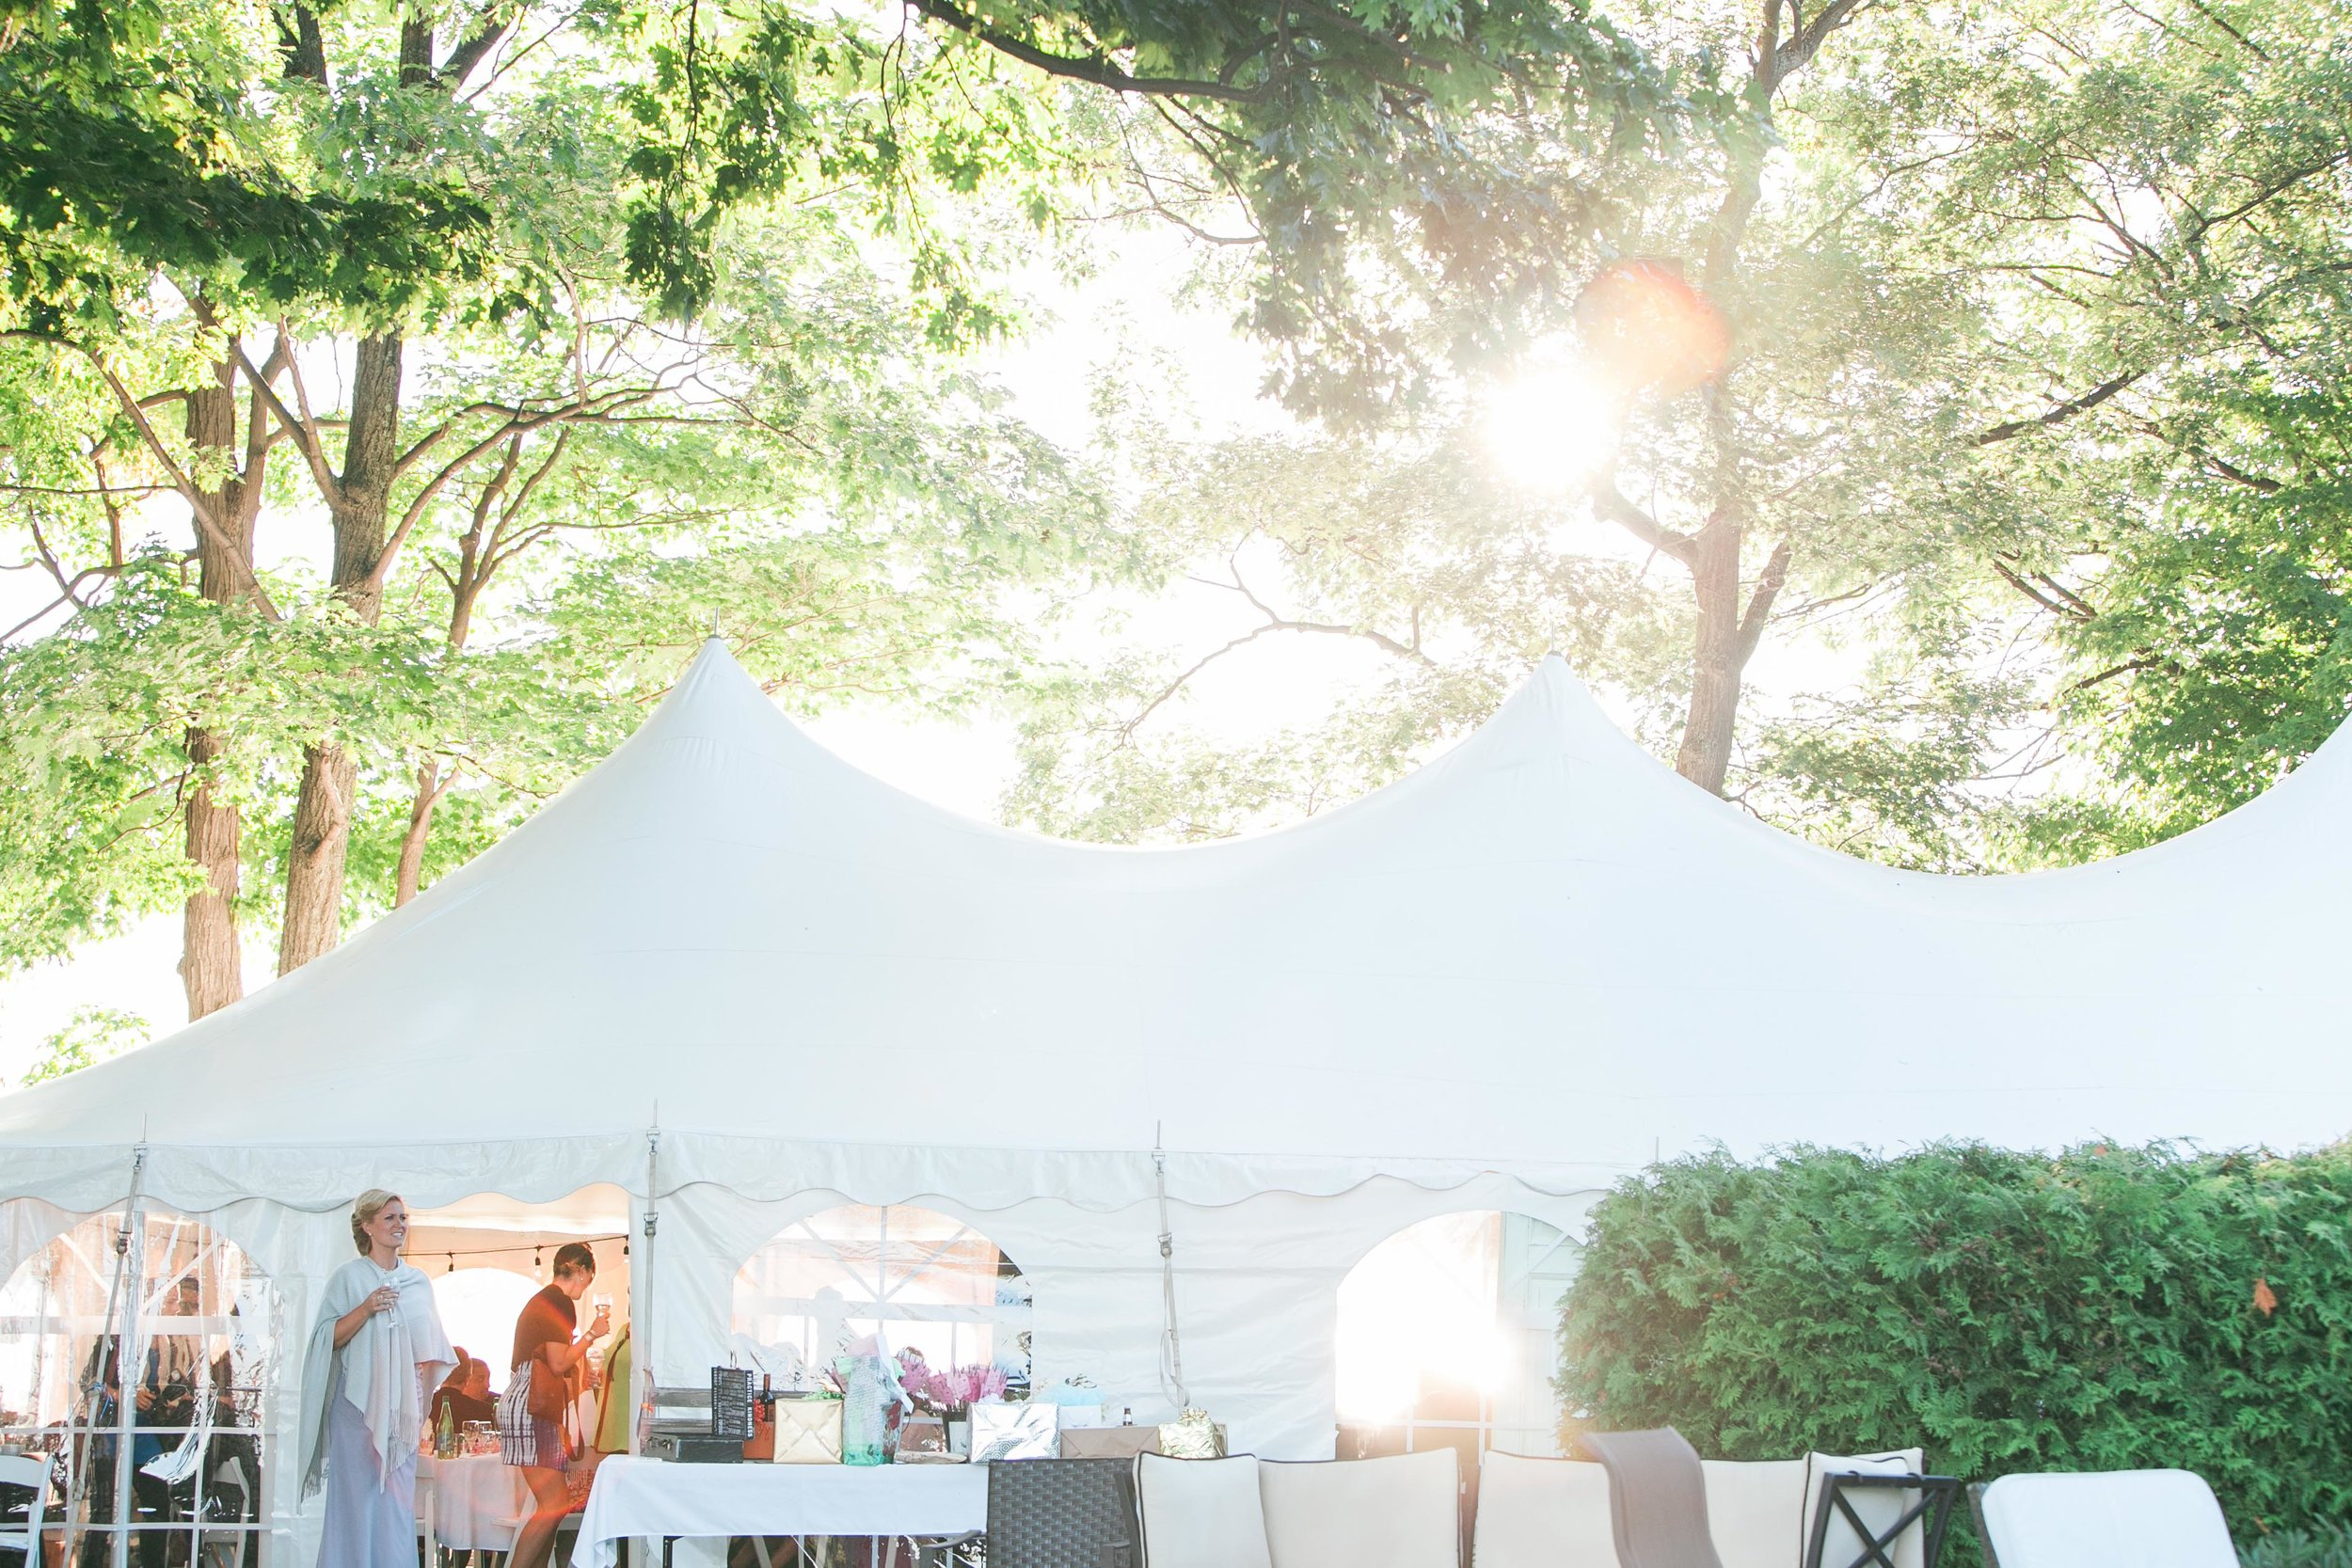 Tented wedding in Muskoka